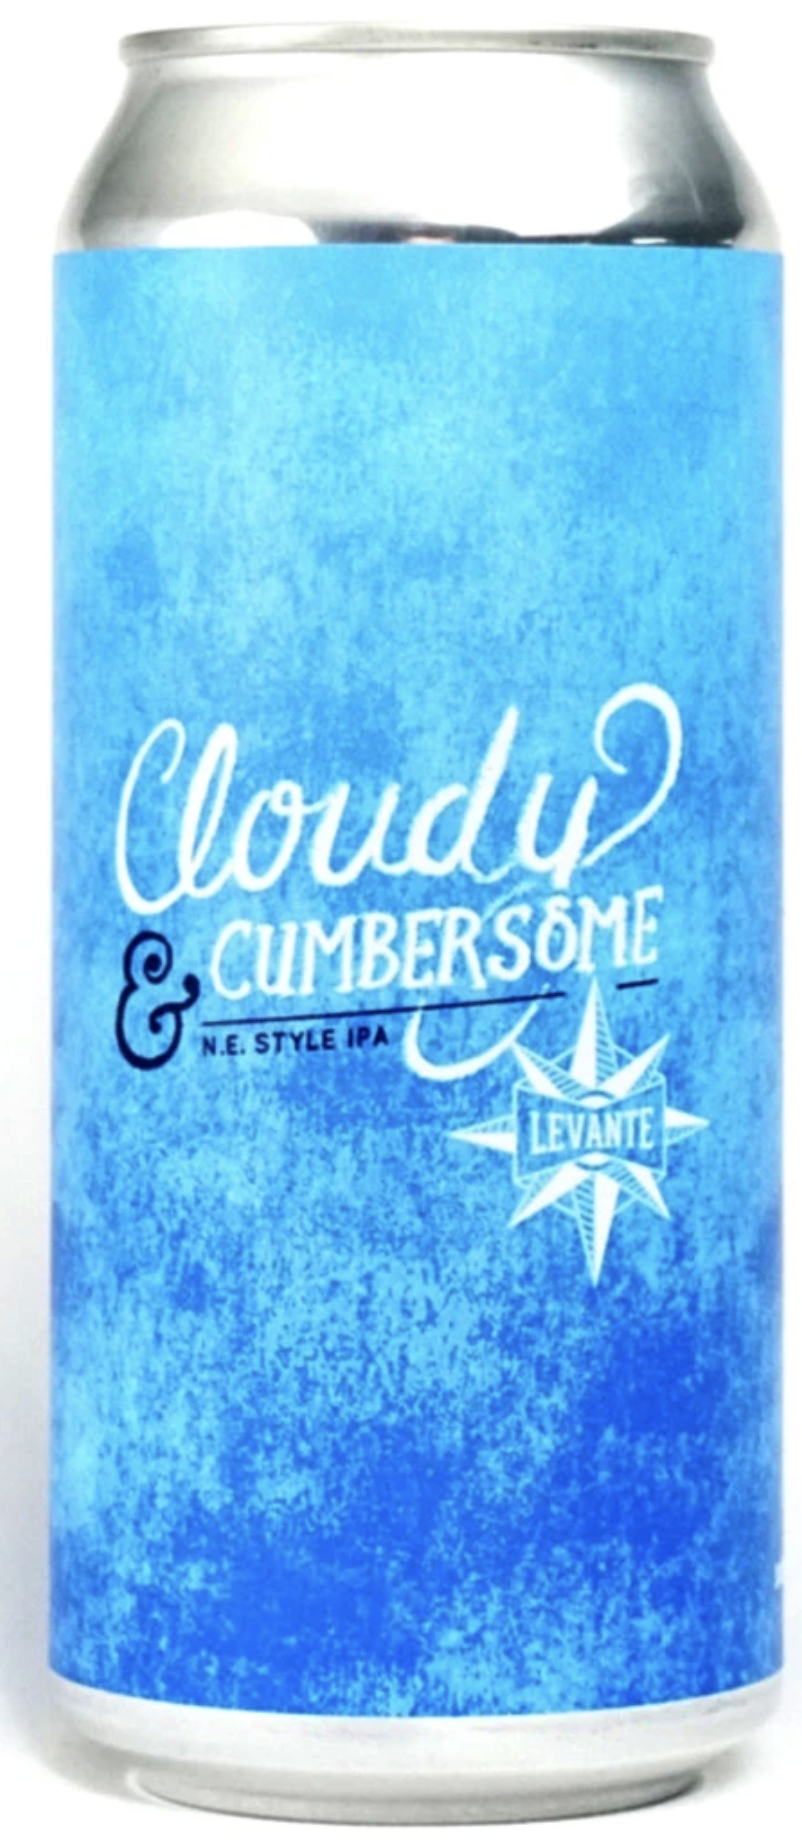 Levante Cloudy and Cumbersome (4pk 16oz cans)